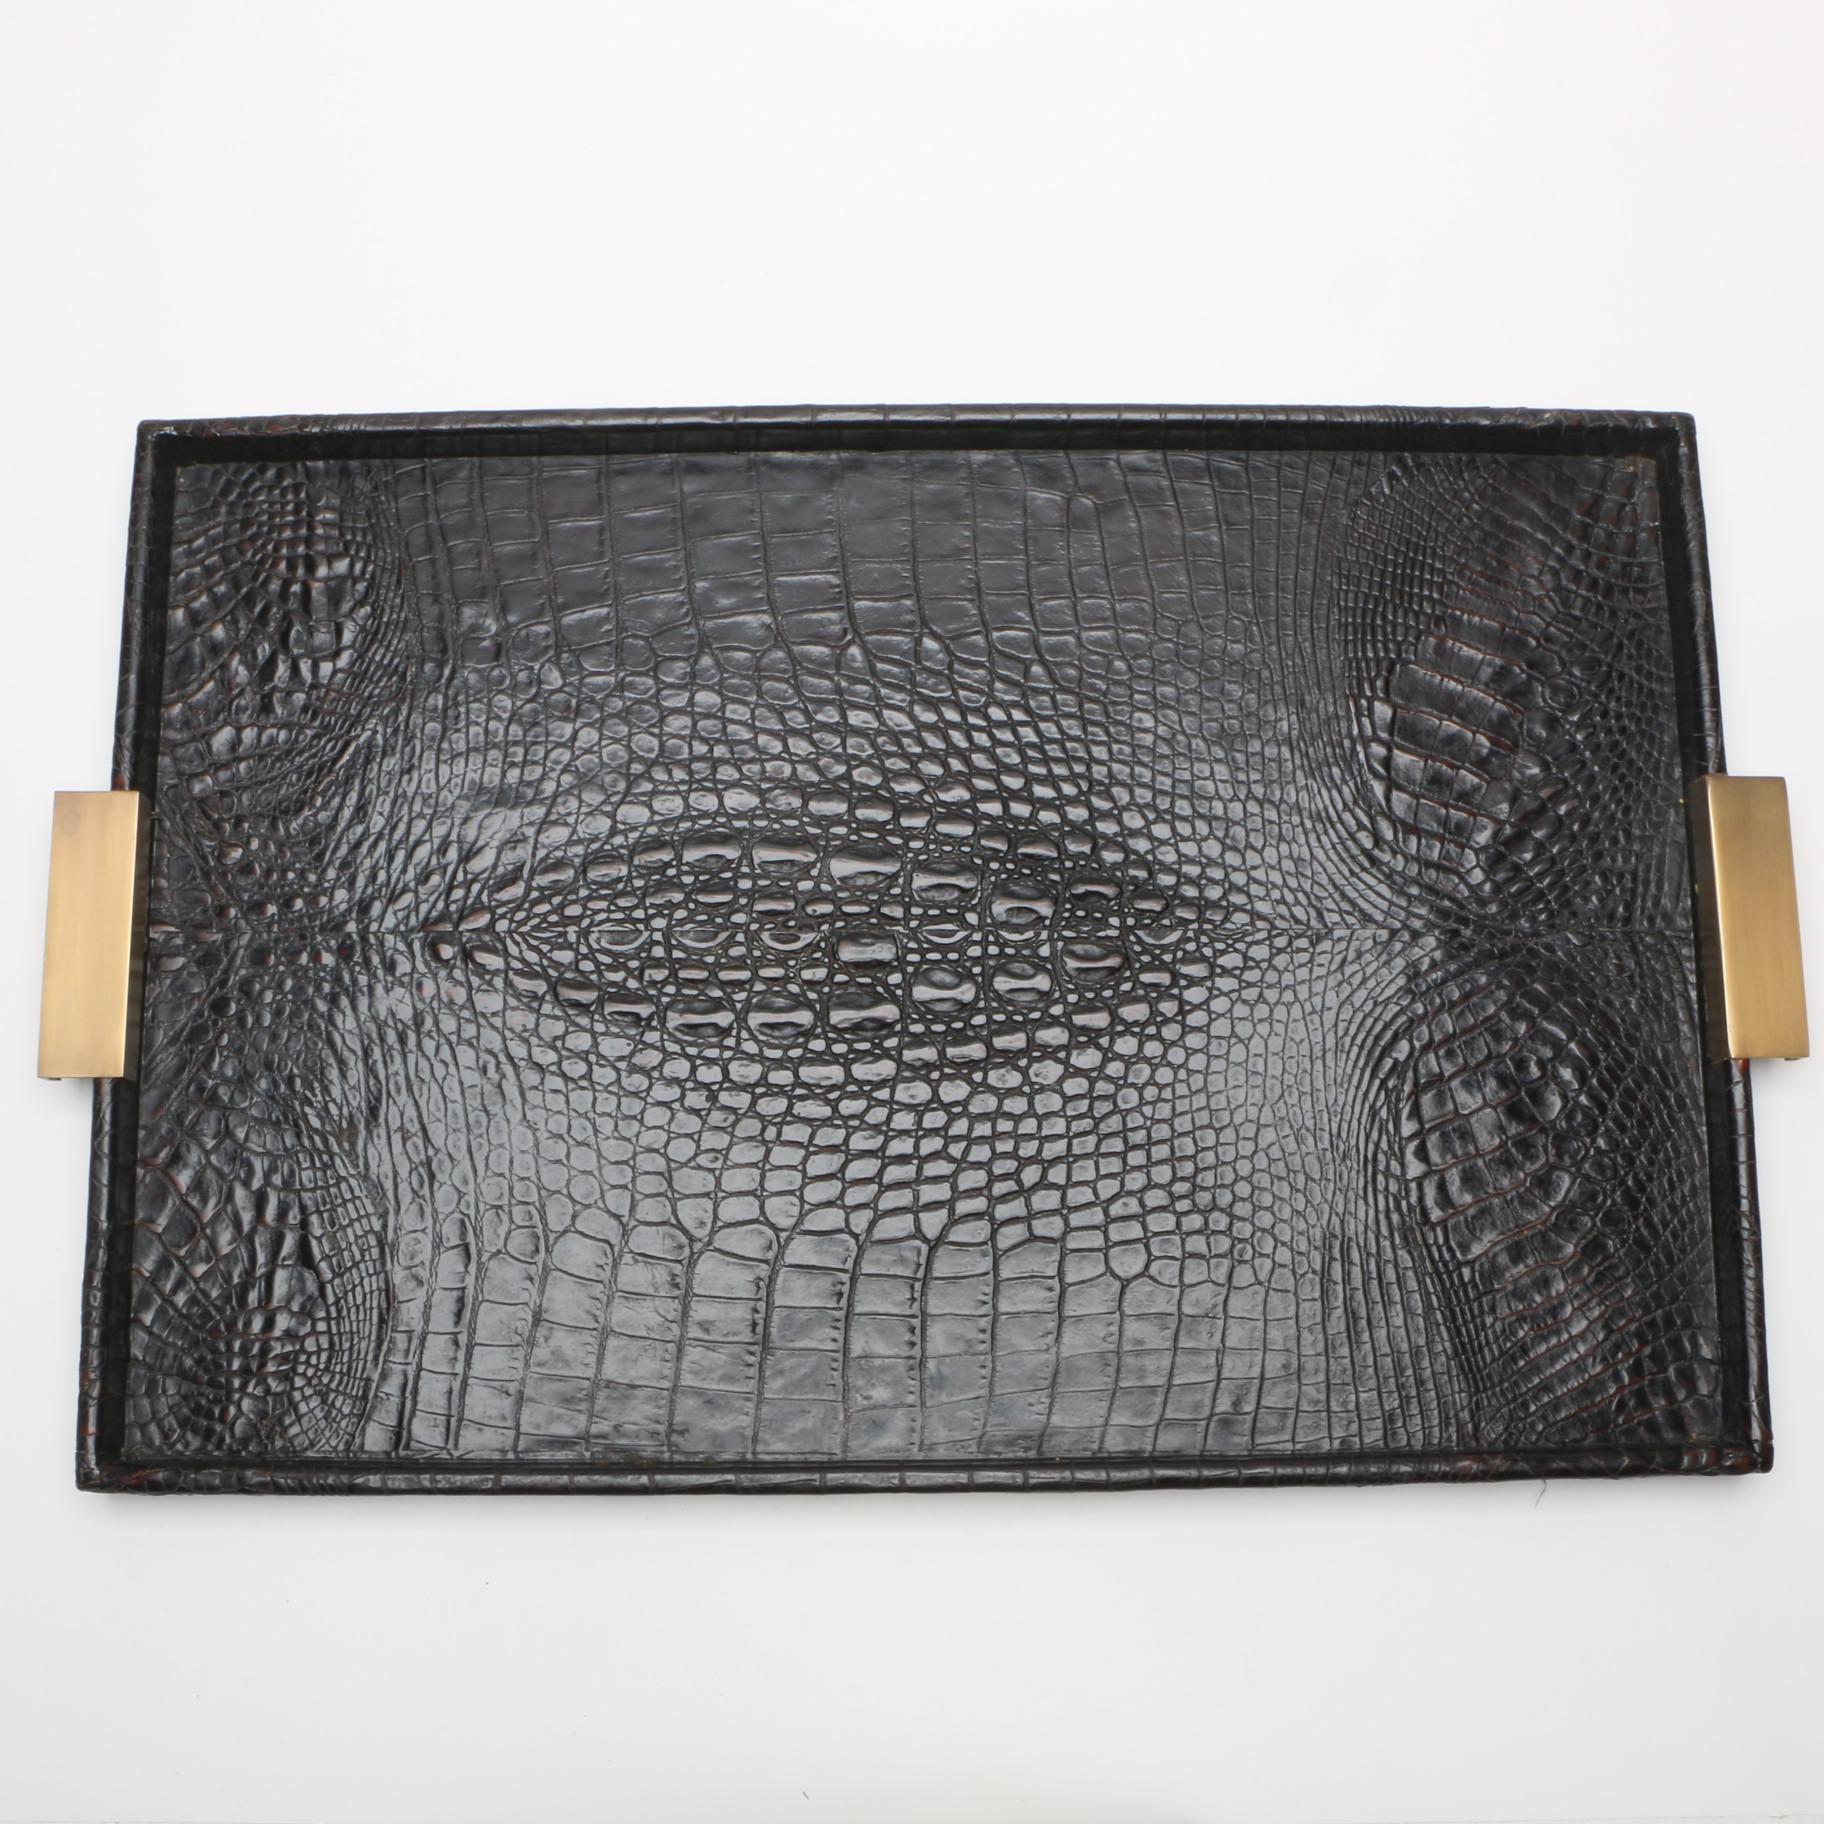 Faux Alligator Skin Motif Textured Tray